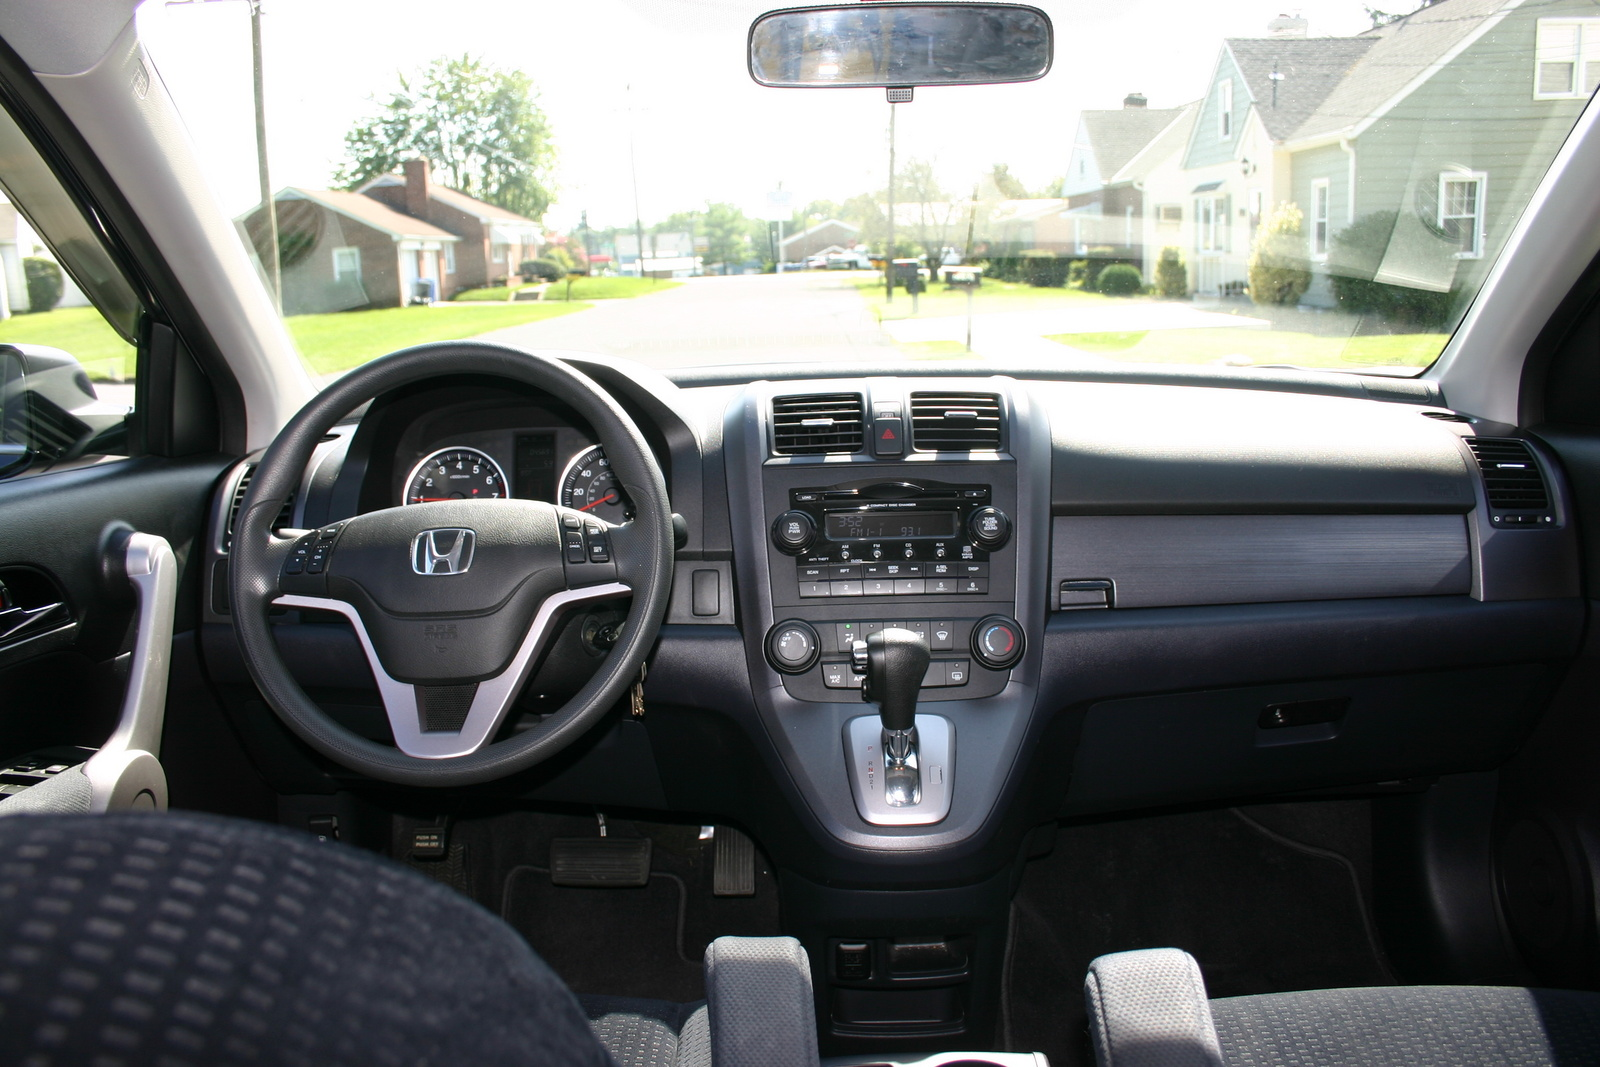 2007 Honda Cr V Interior Pictures Cargurus